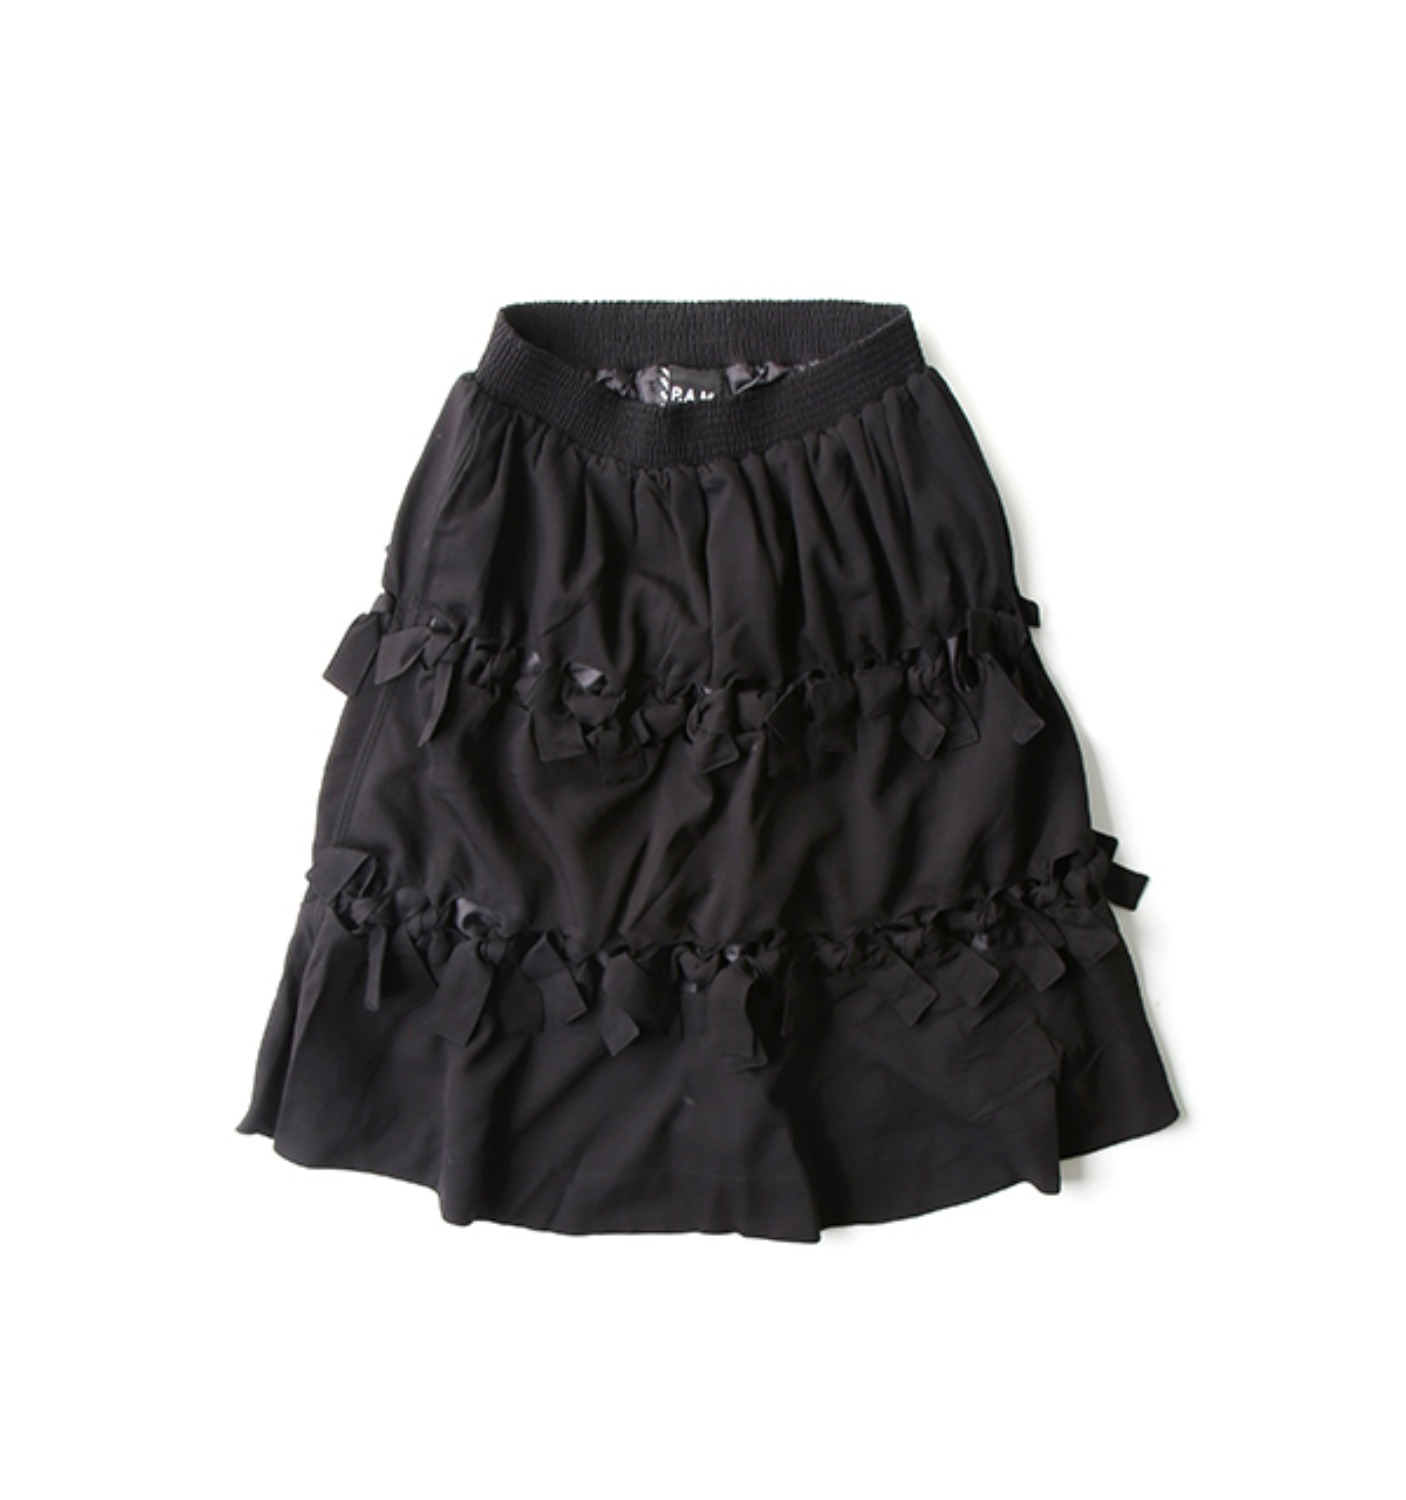 CROSSED WIRES SKIRT BLACK